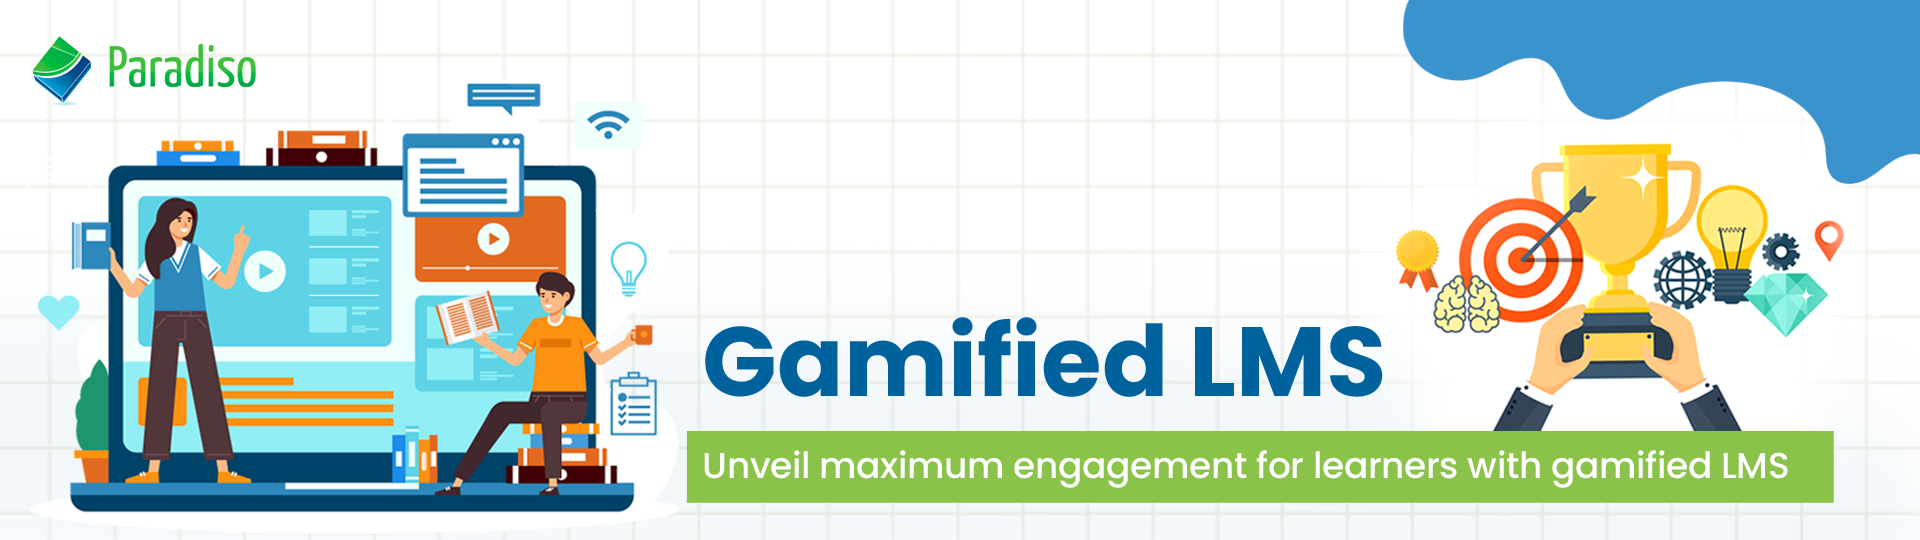 Gamified LMS- Paradiso LMS